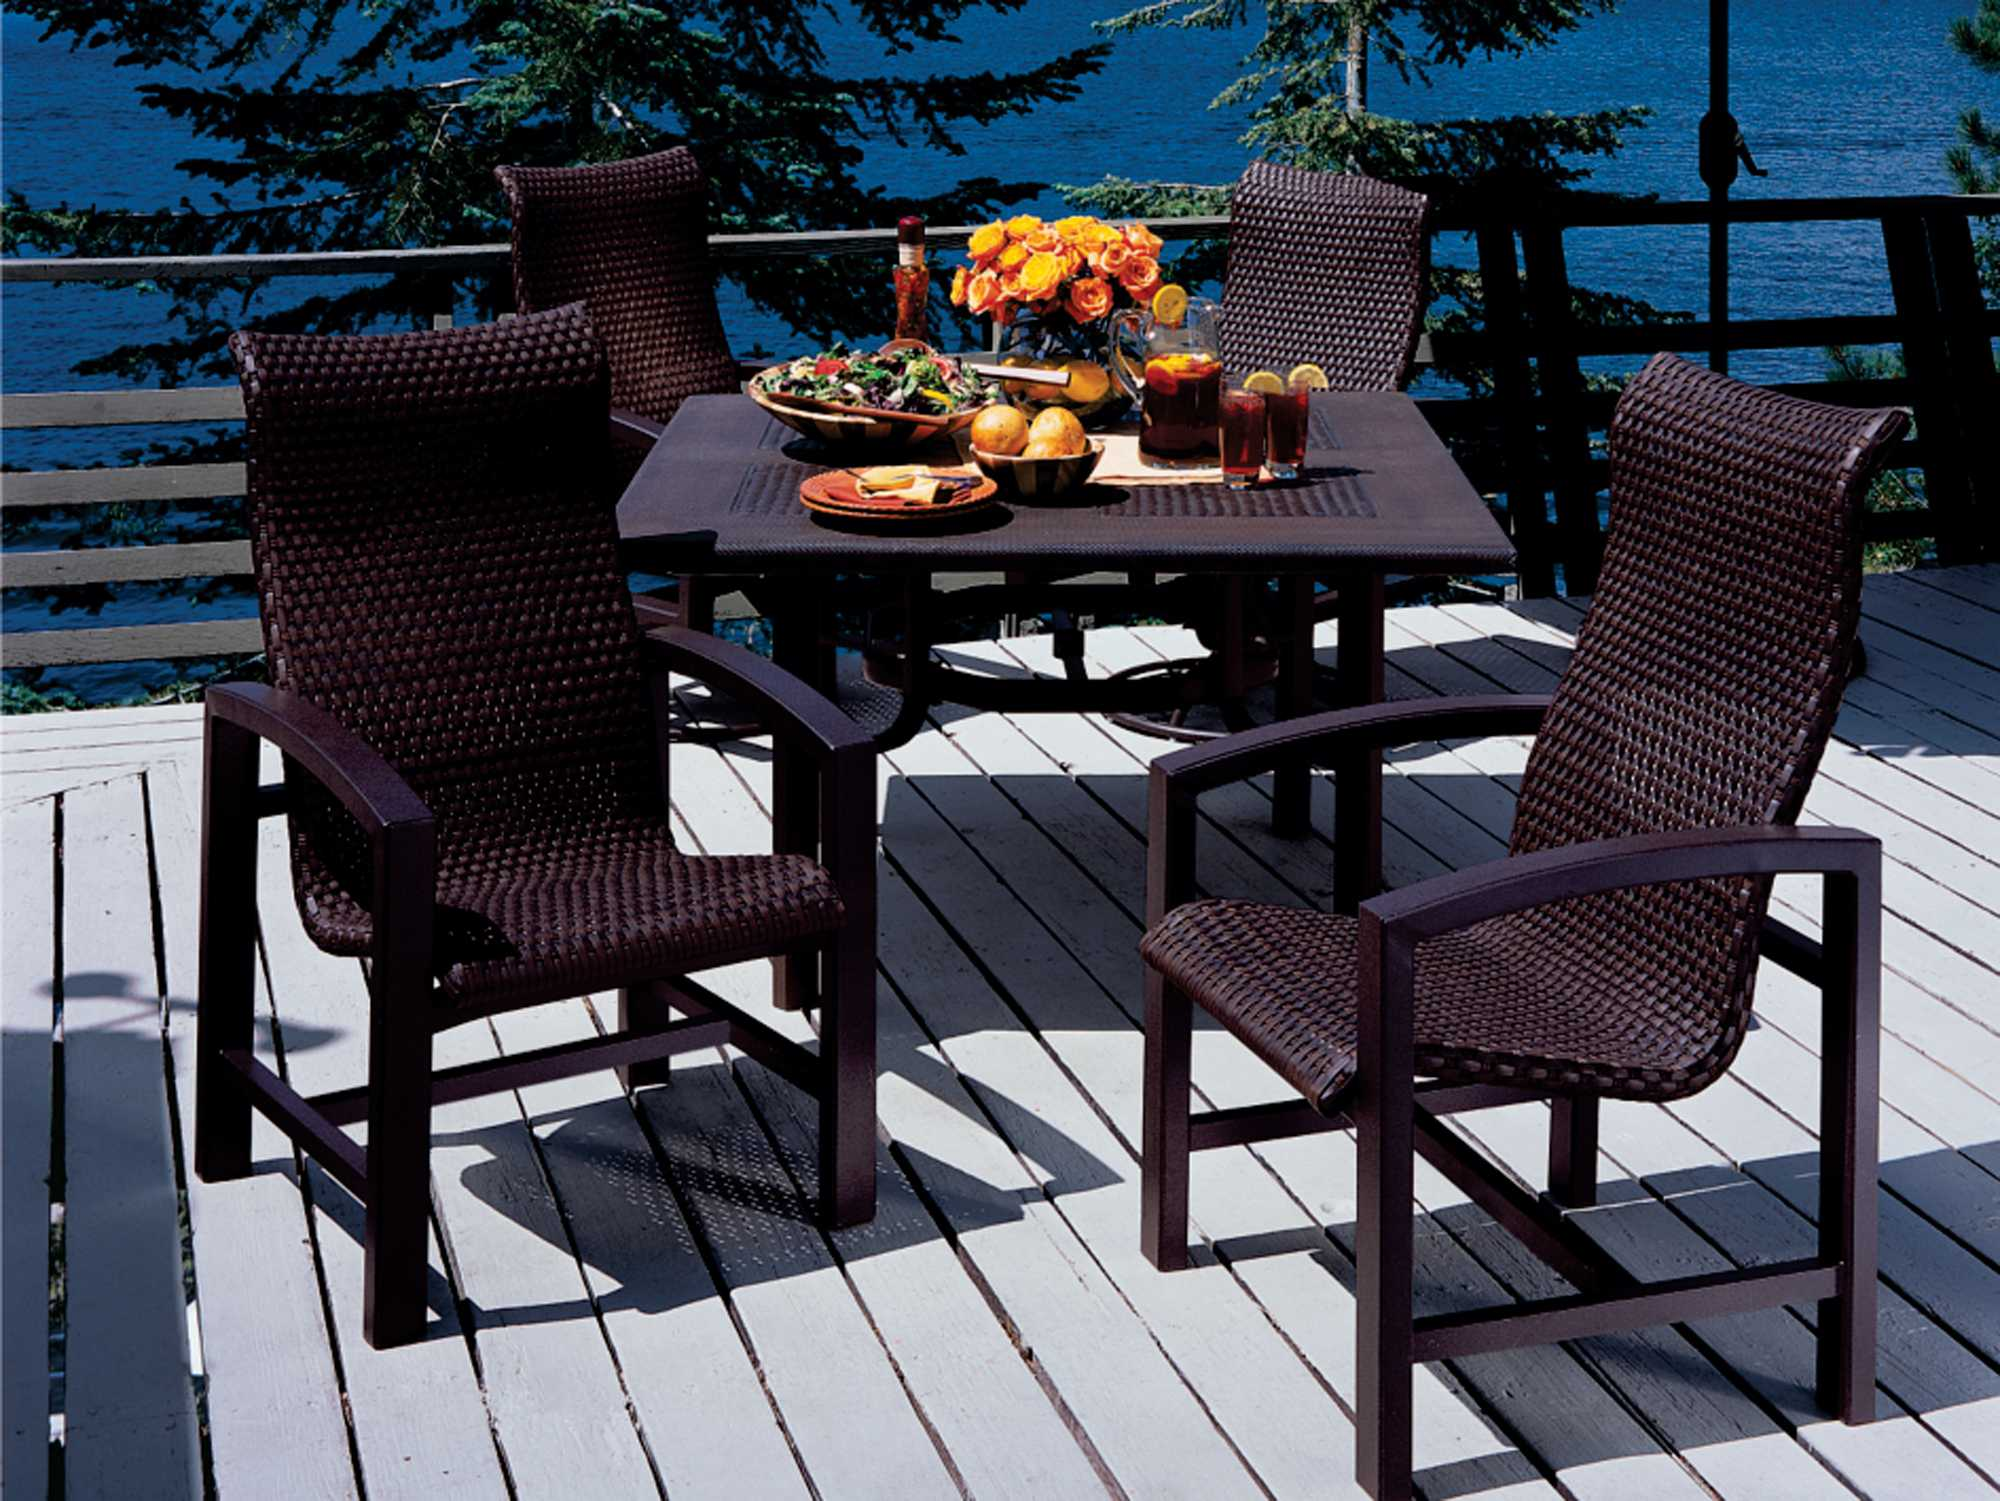 Tropitone Lakeside Woven Dining Chair WS - Tropitone outdoor furniture